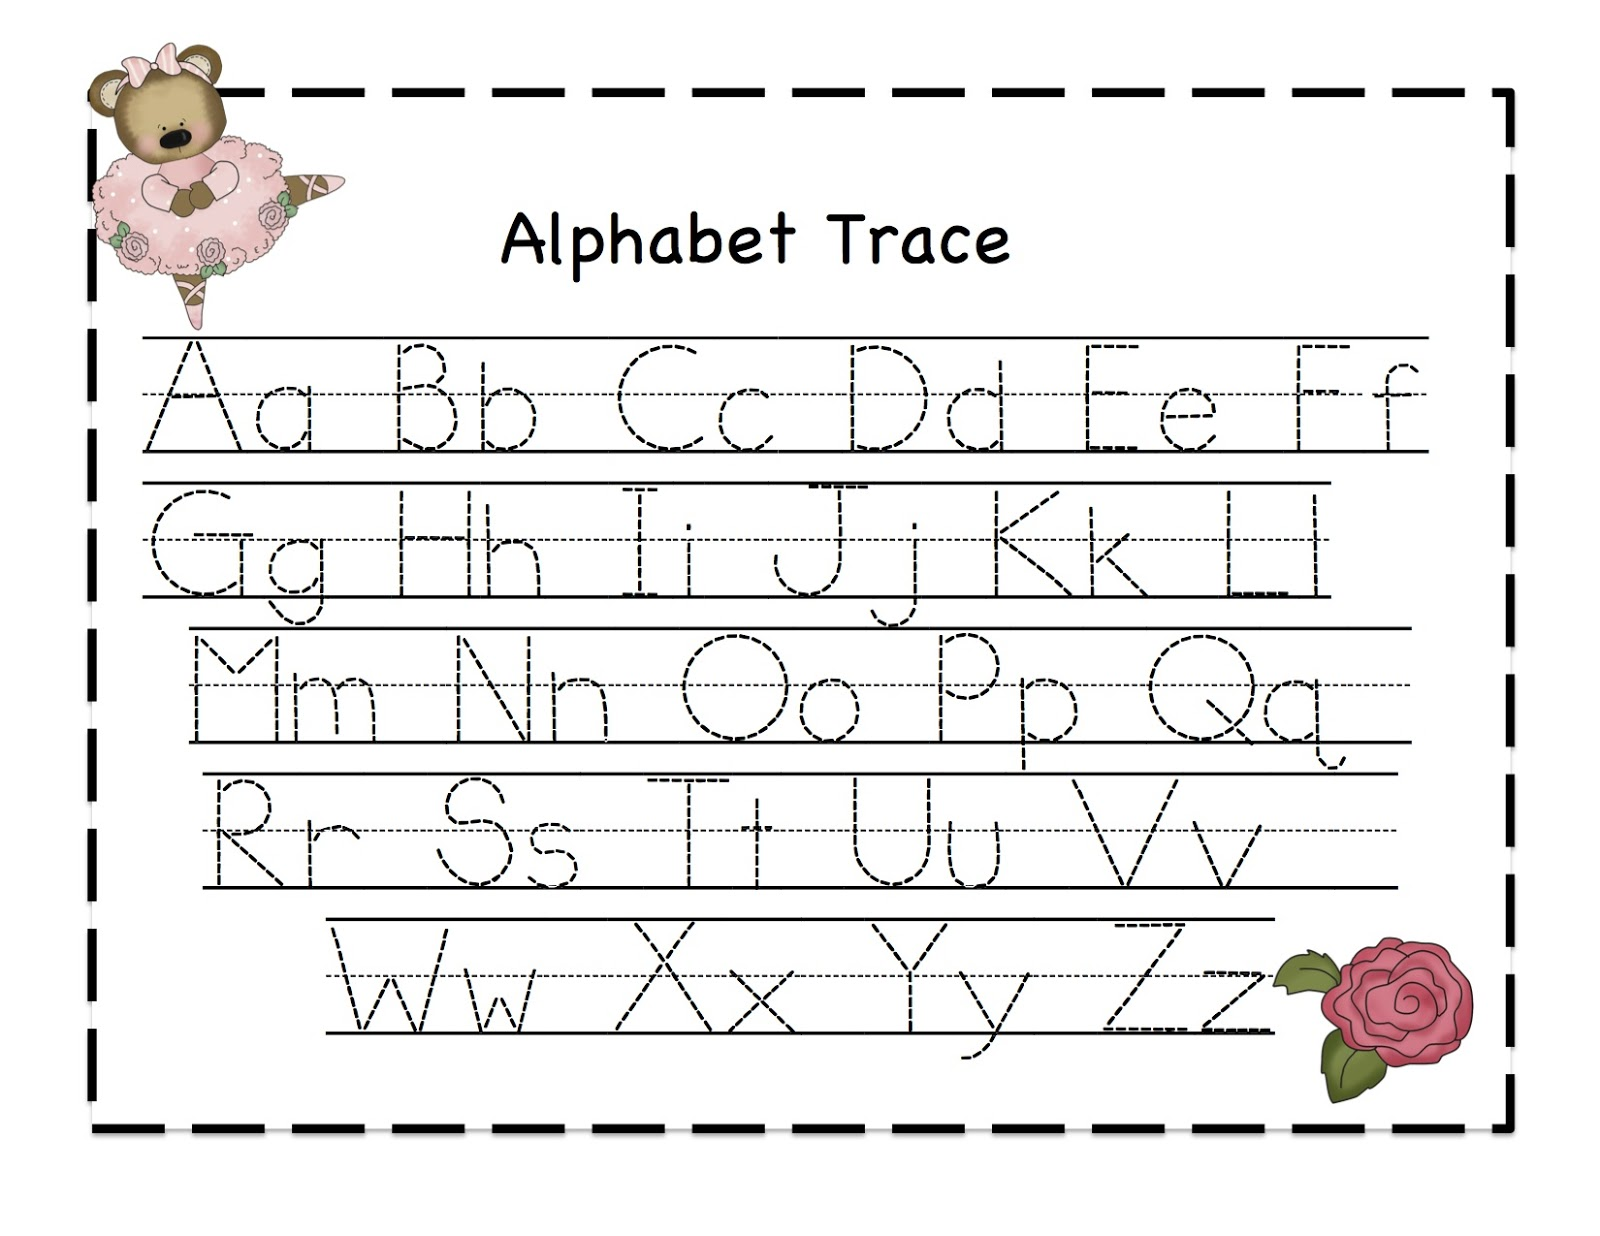 Worksheets Alphabet Tracing Letter A Along With Printable Letter ...